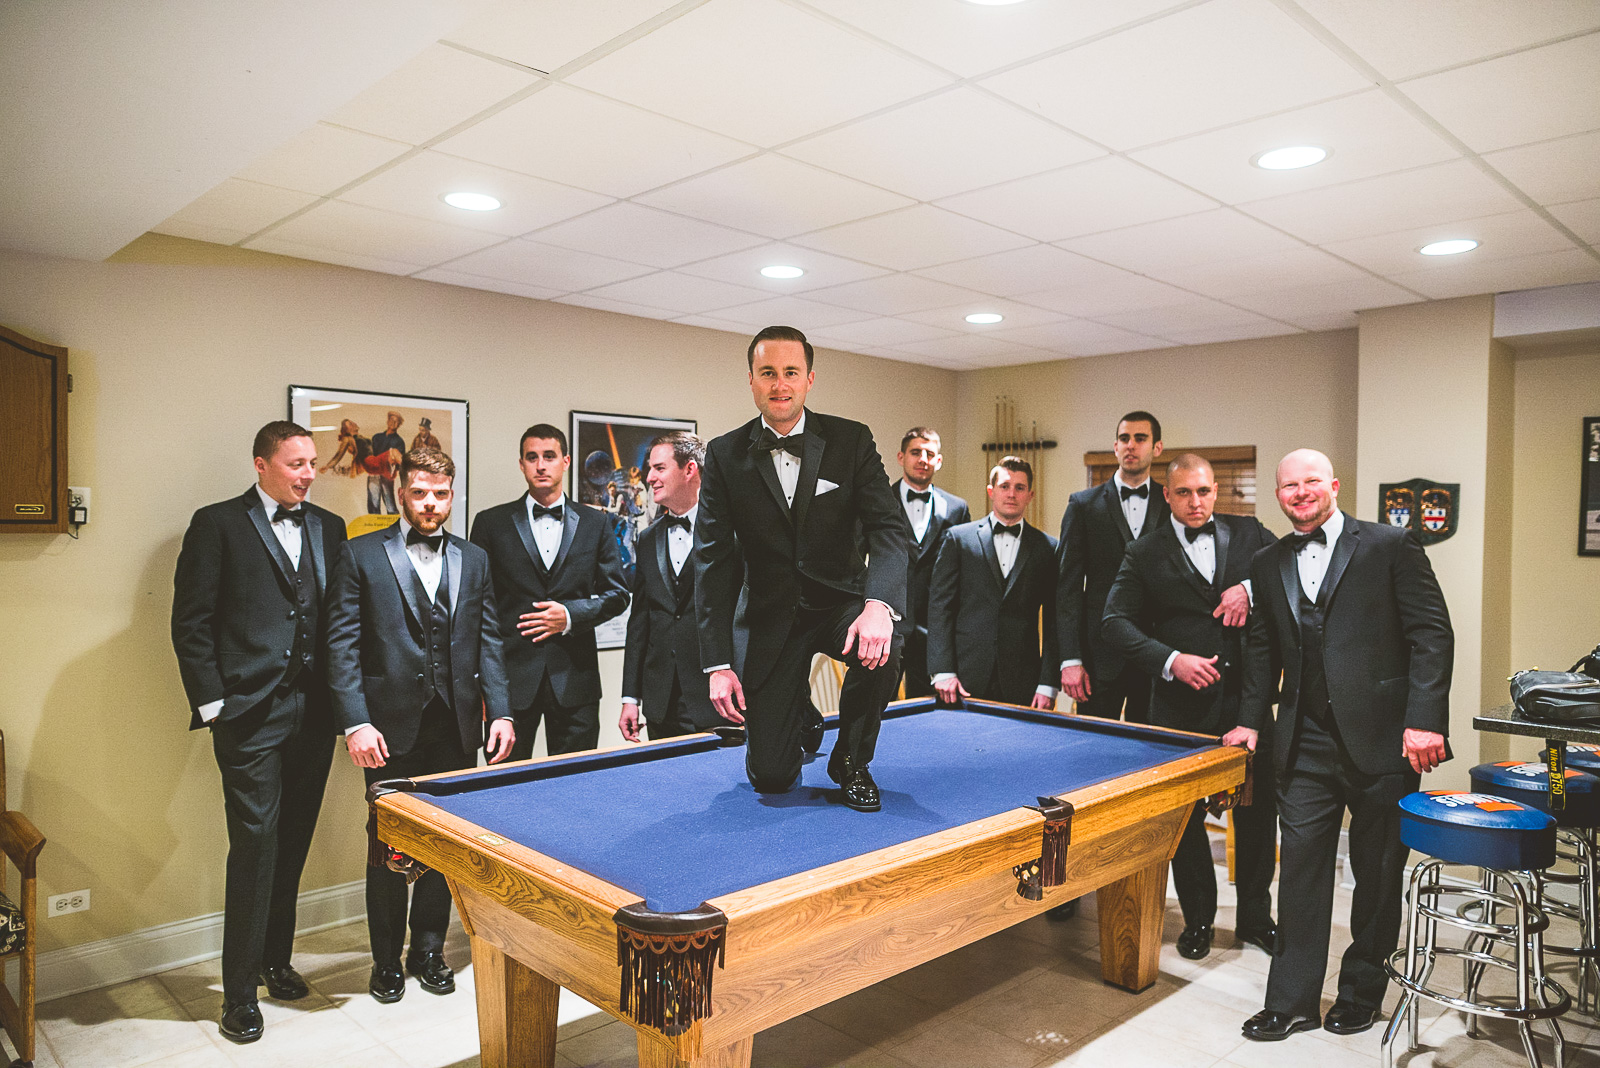 20 groomsmen on pool table